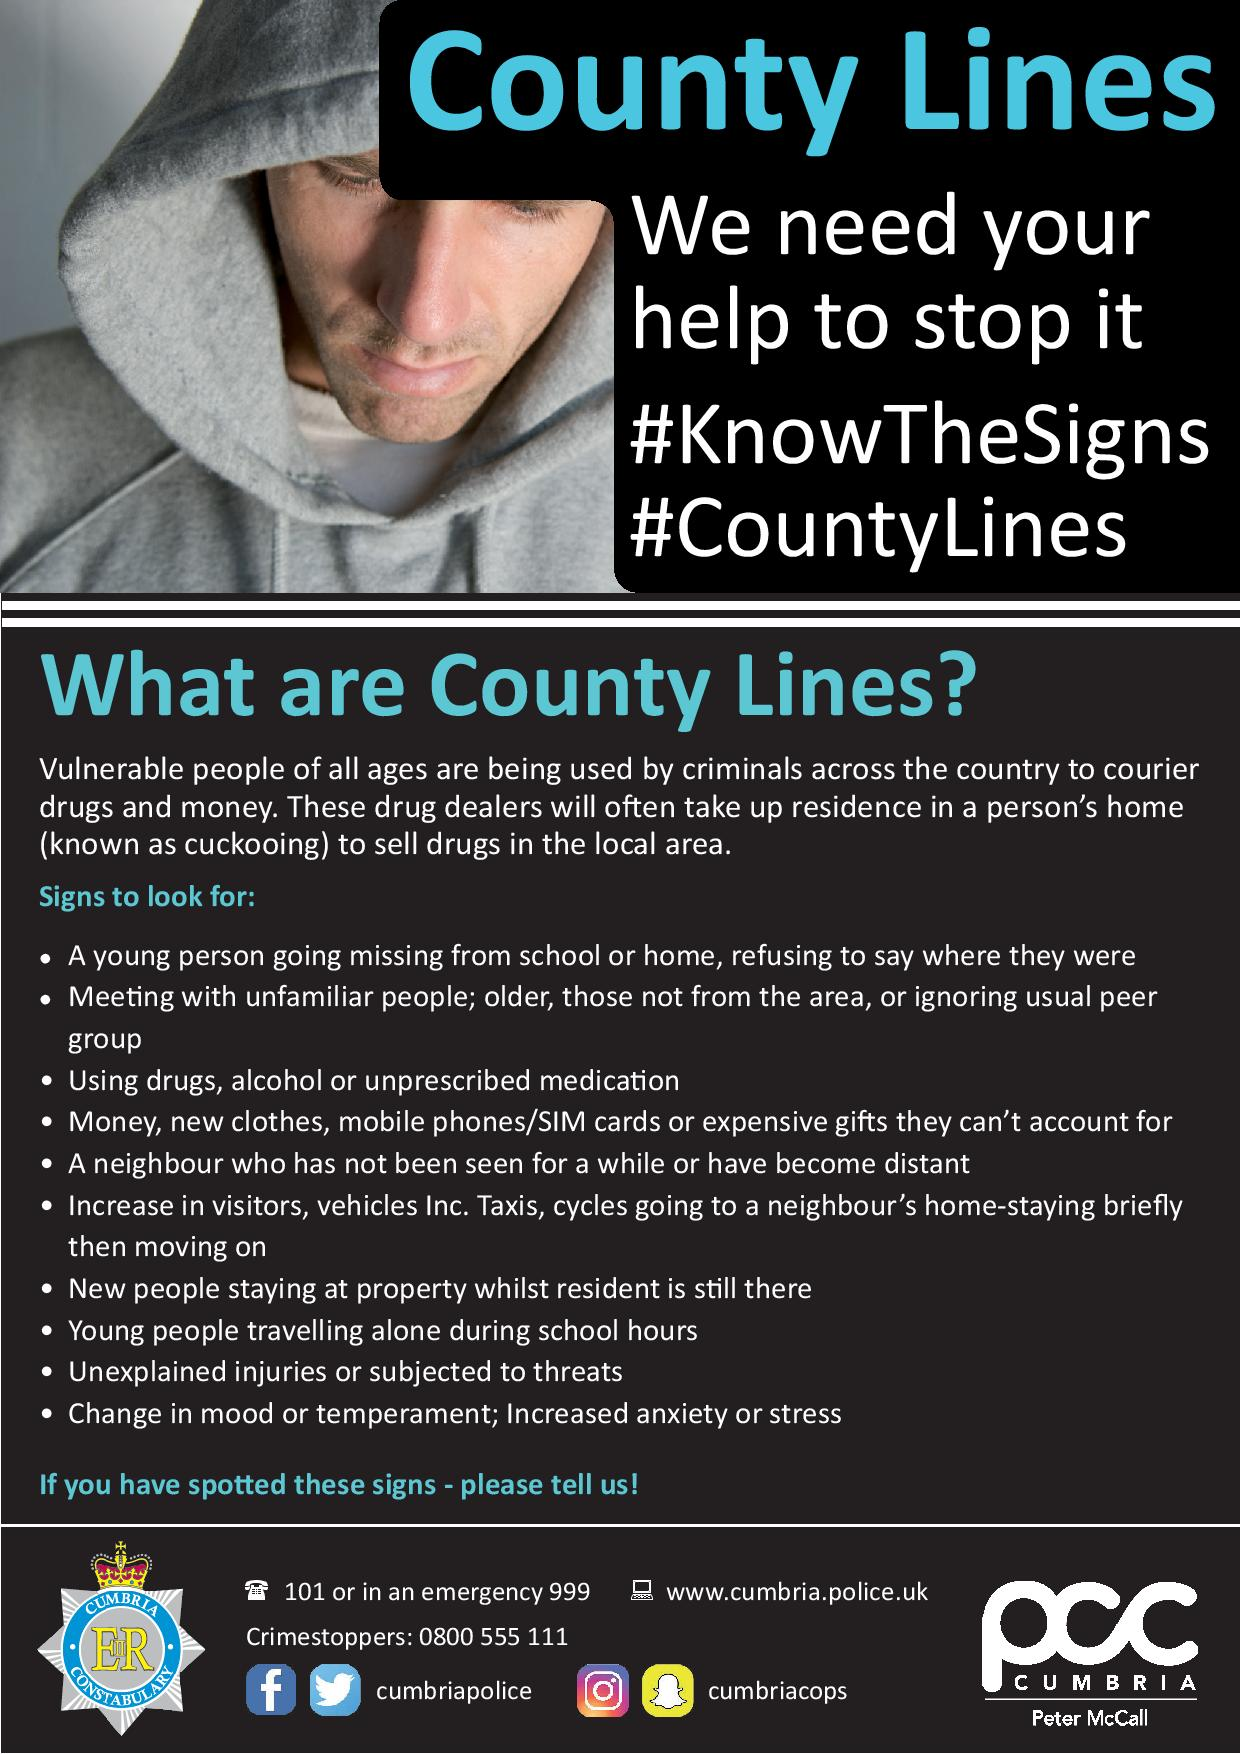 County Lines - we need your help to stop it FINAL UPDATED JAN 21-page-001